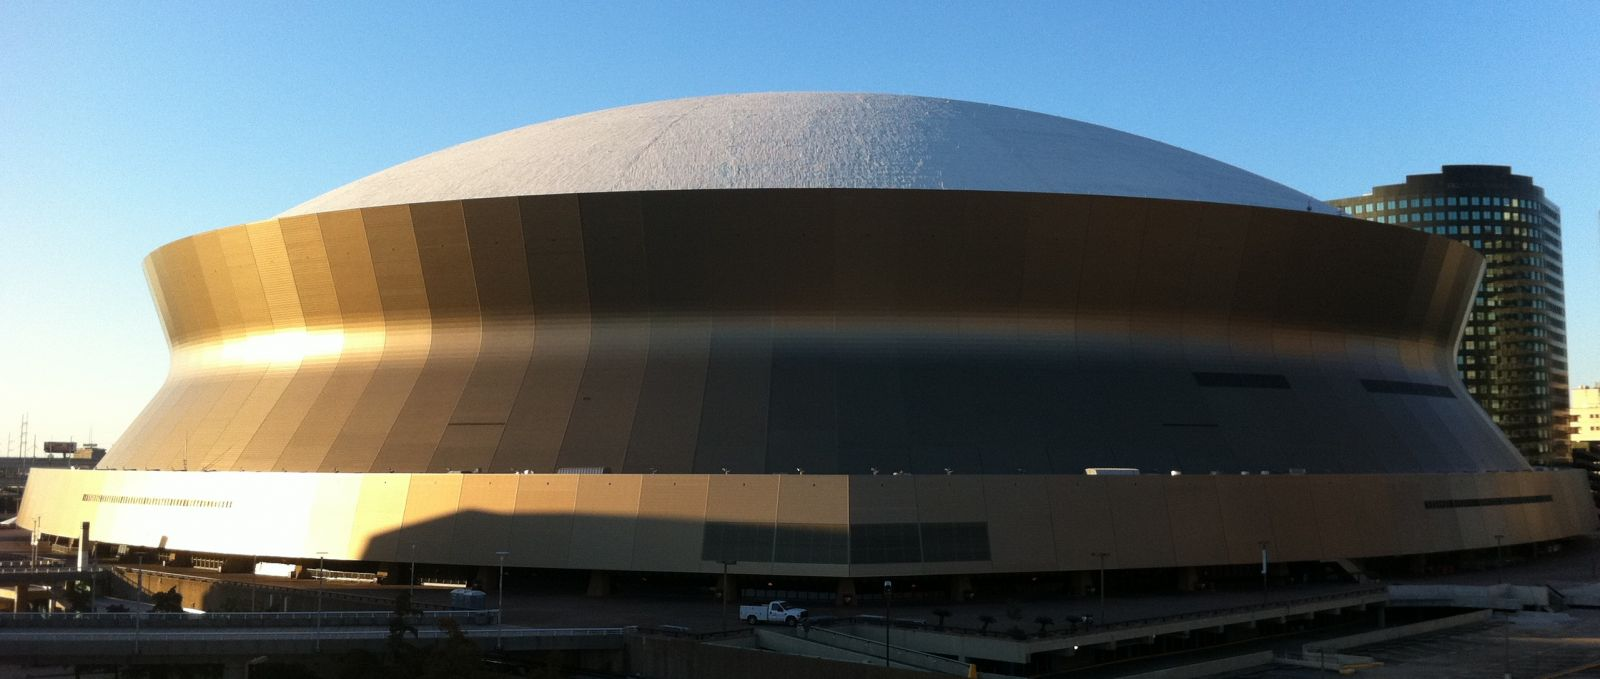 mercedes benz superdome experience new orleans experience new orleans